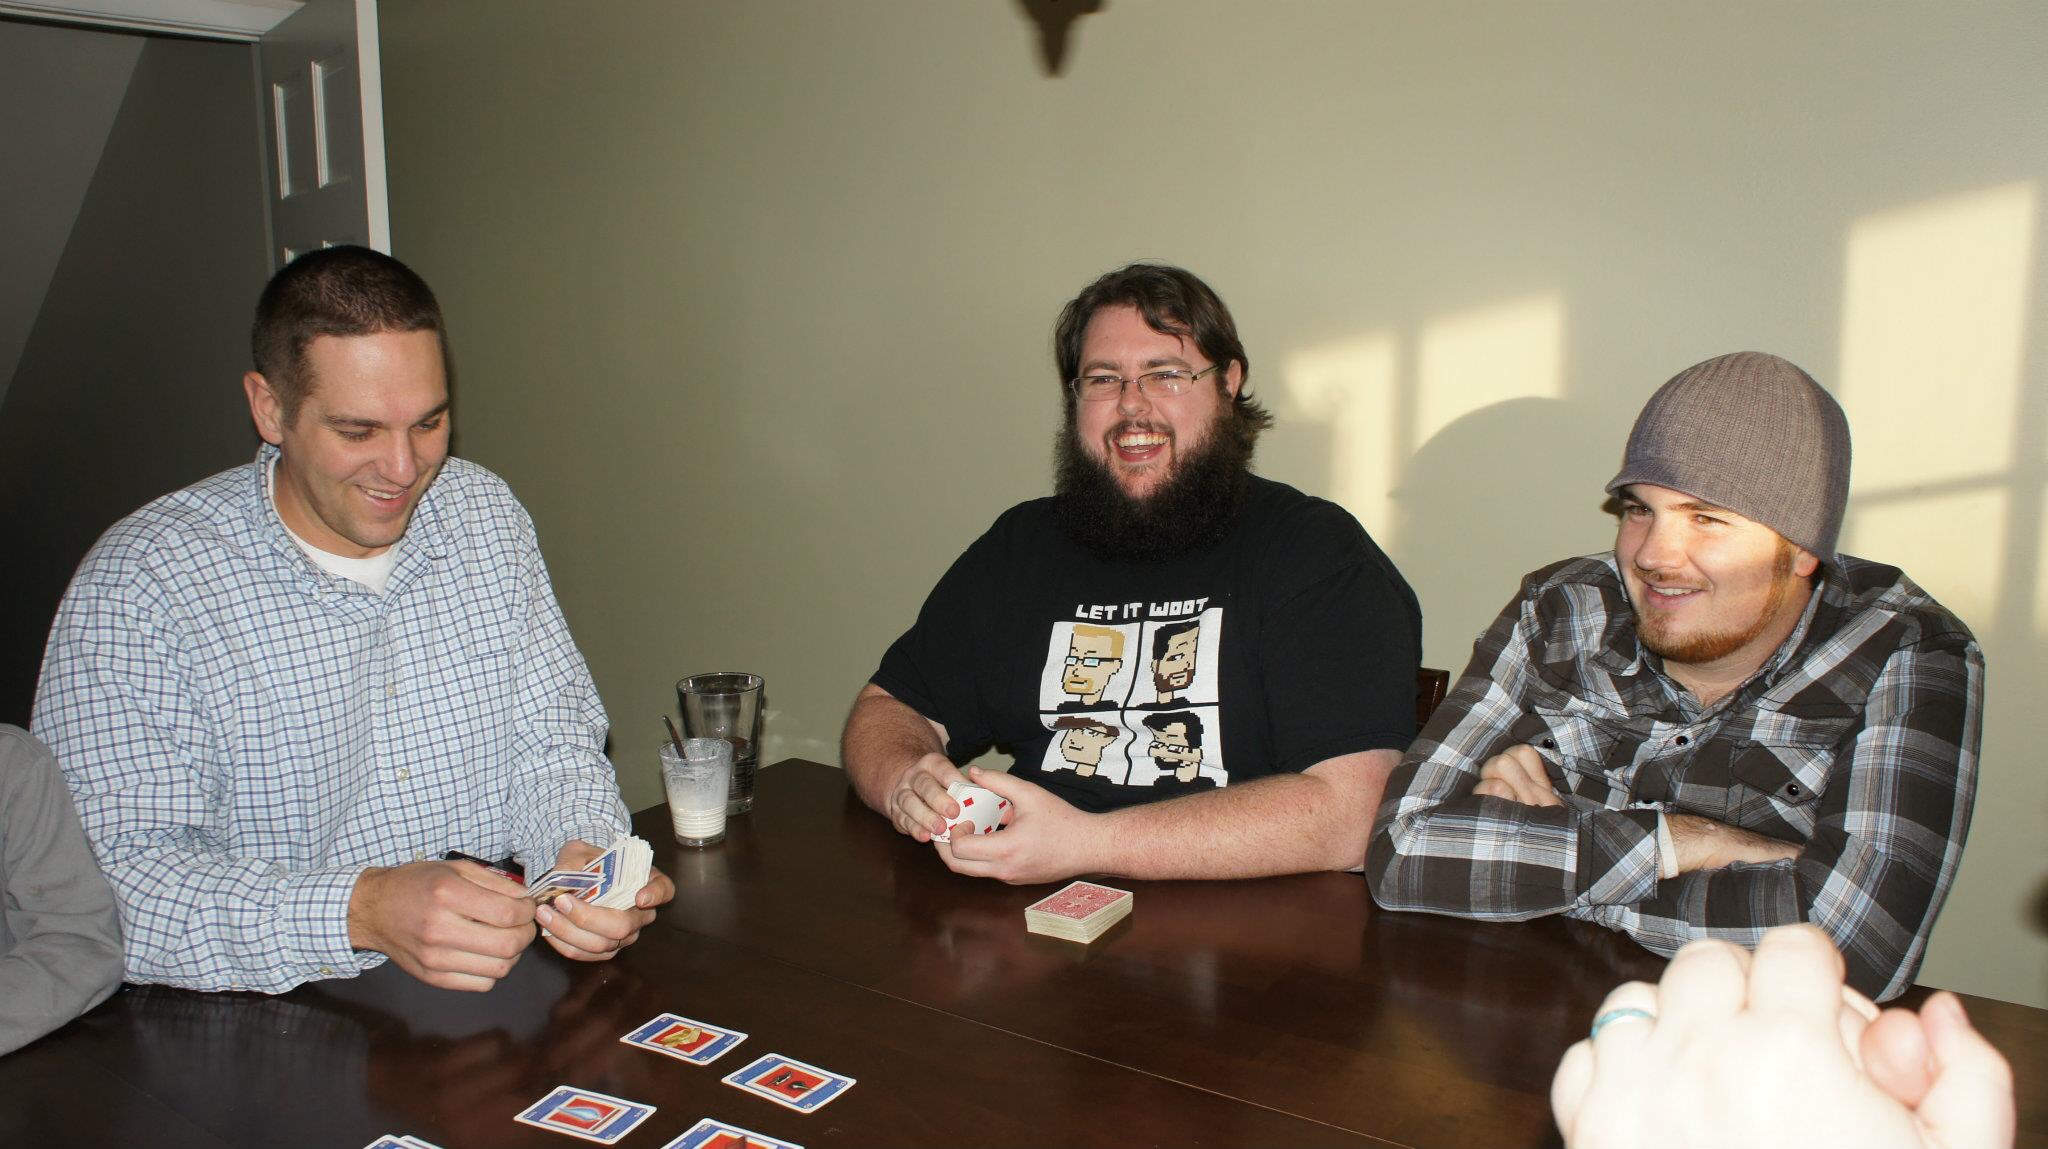 Many in James congregation consider him more than a pastor. Here, he plays games with fellow pastor Russ Robinson. (contributed by James Thompson)